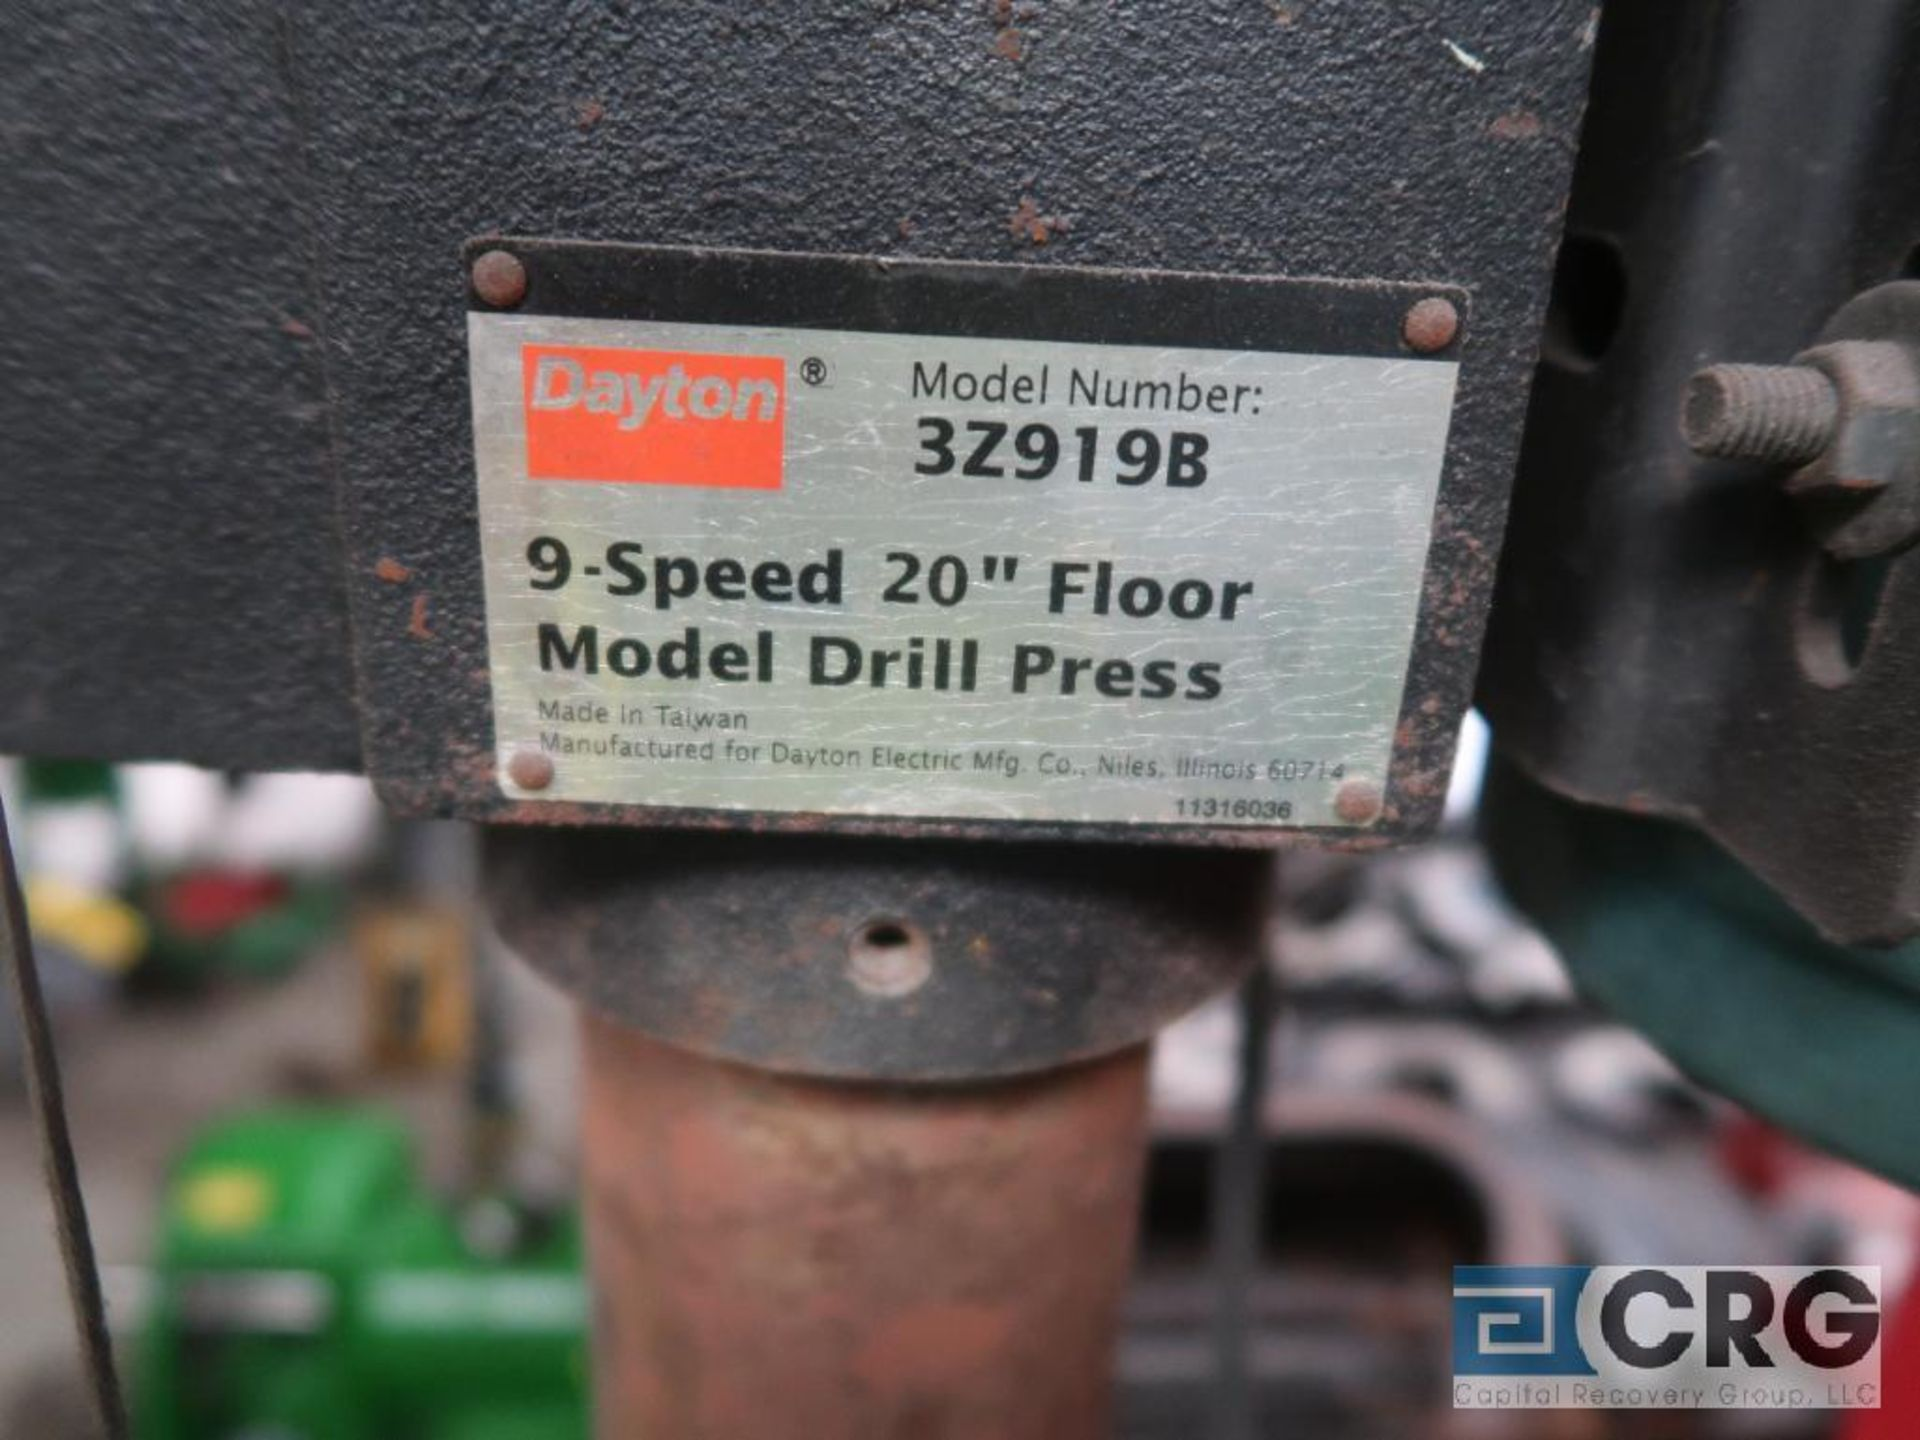 Dayton 20 in. pedestal drill press with vice, 115 volt (Basement Stores) - Image 3 of 3